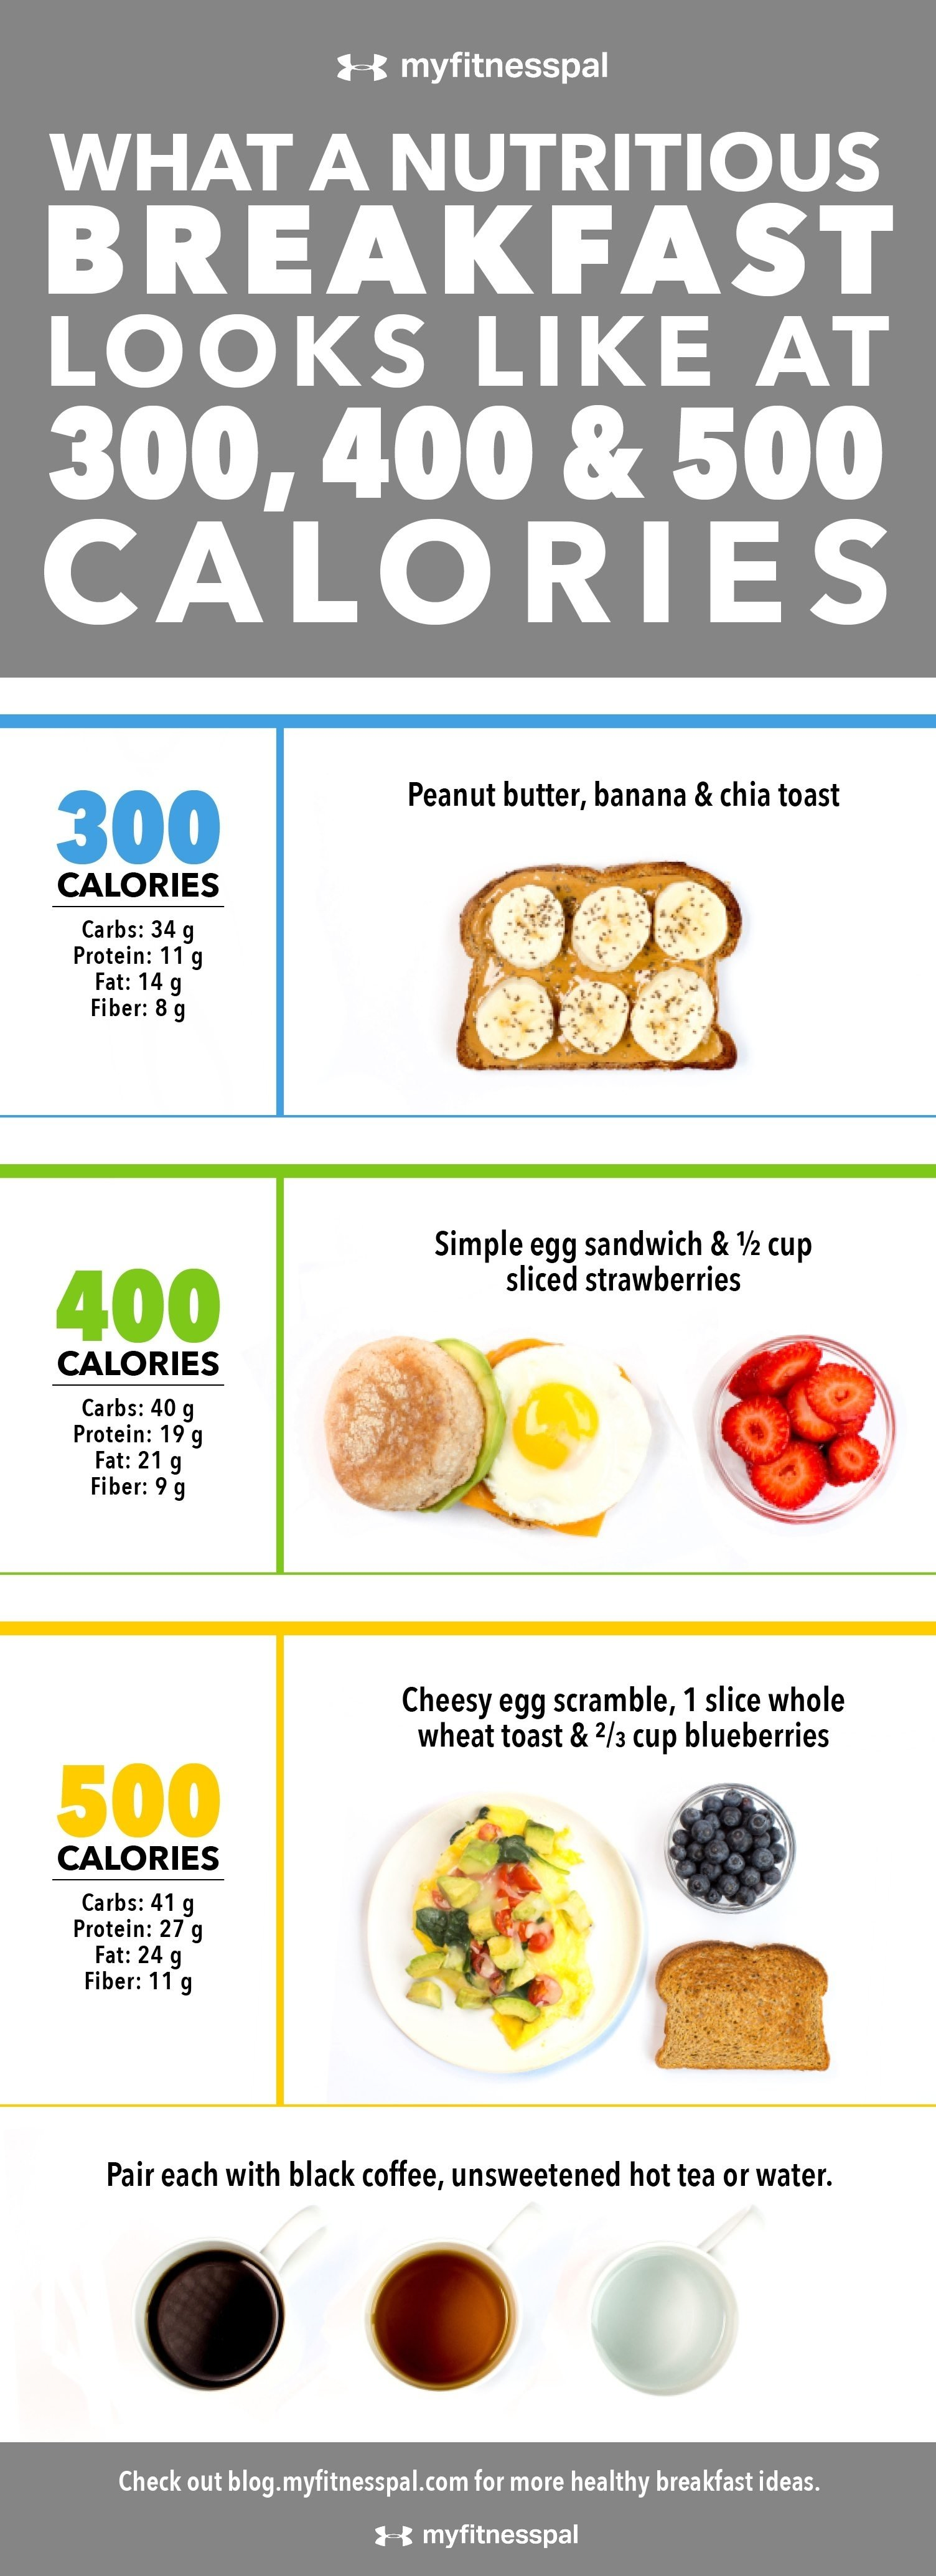 10 Fabulous Breakfast Ideas Under 300 Calories what a nutritious breakfast looks like at 300 400 500 calories